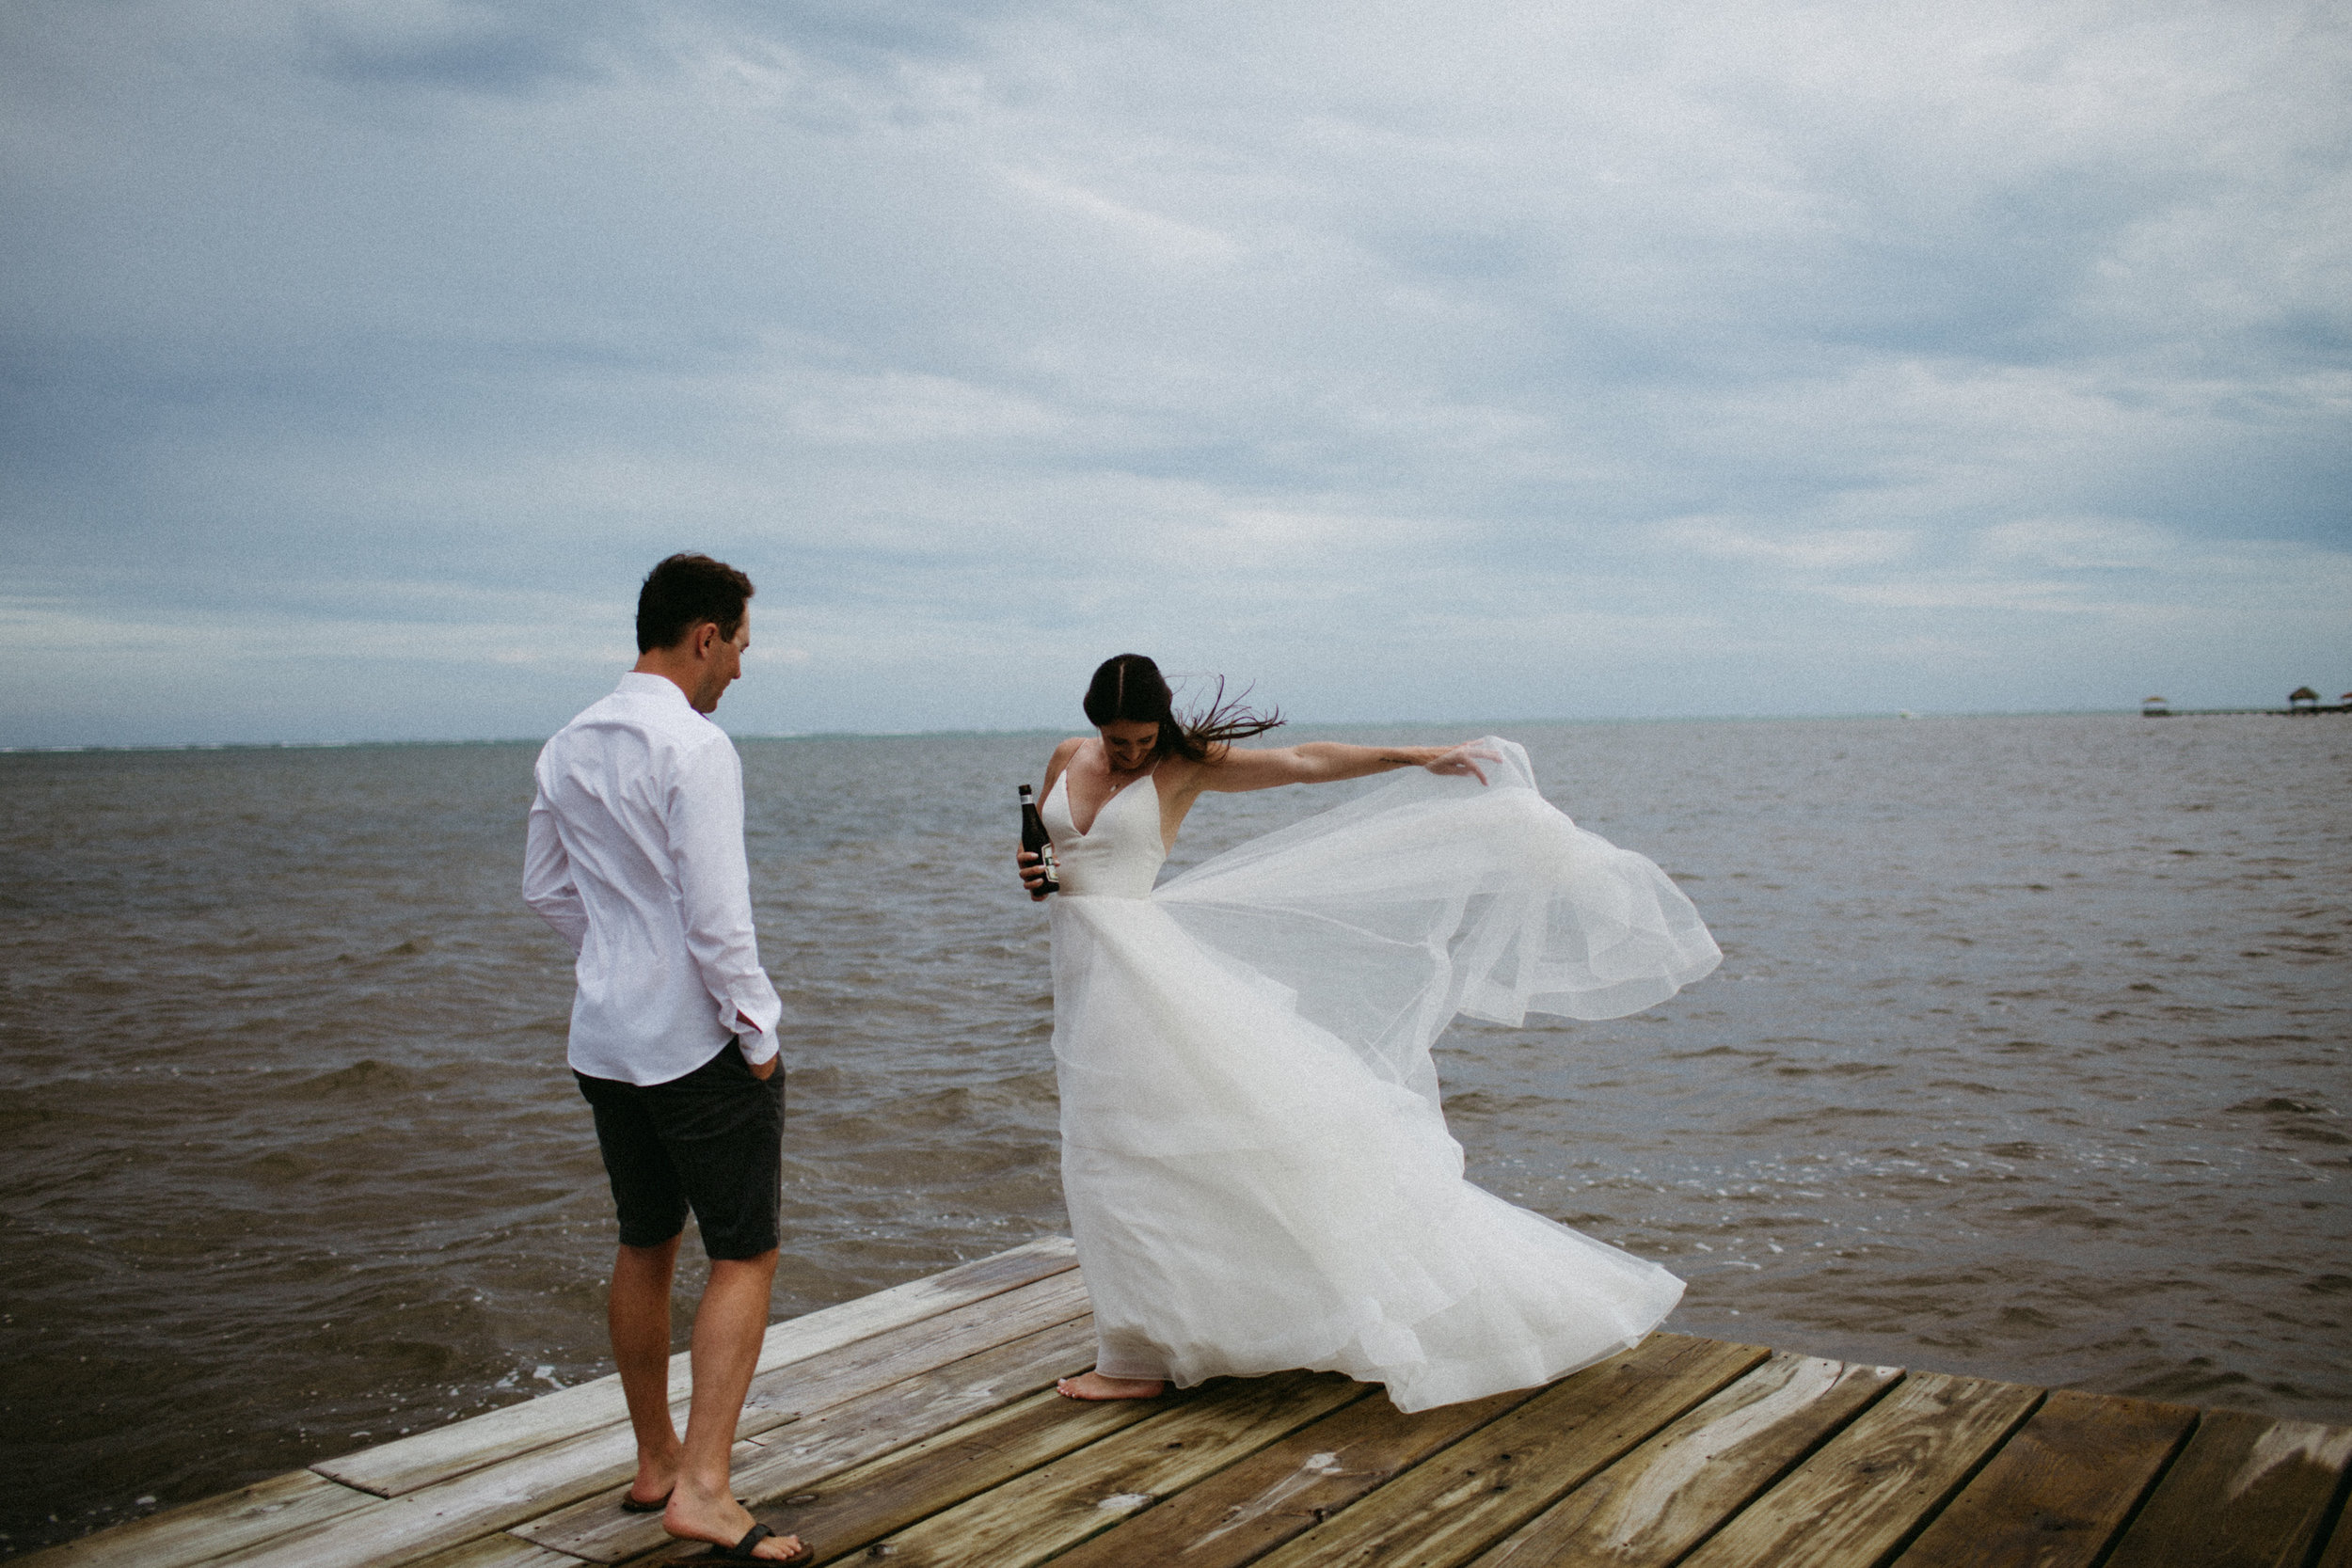 san-pescador-belize-wedding-christinemariephoto-j-k-47.jpg